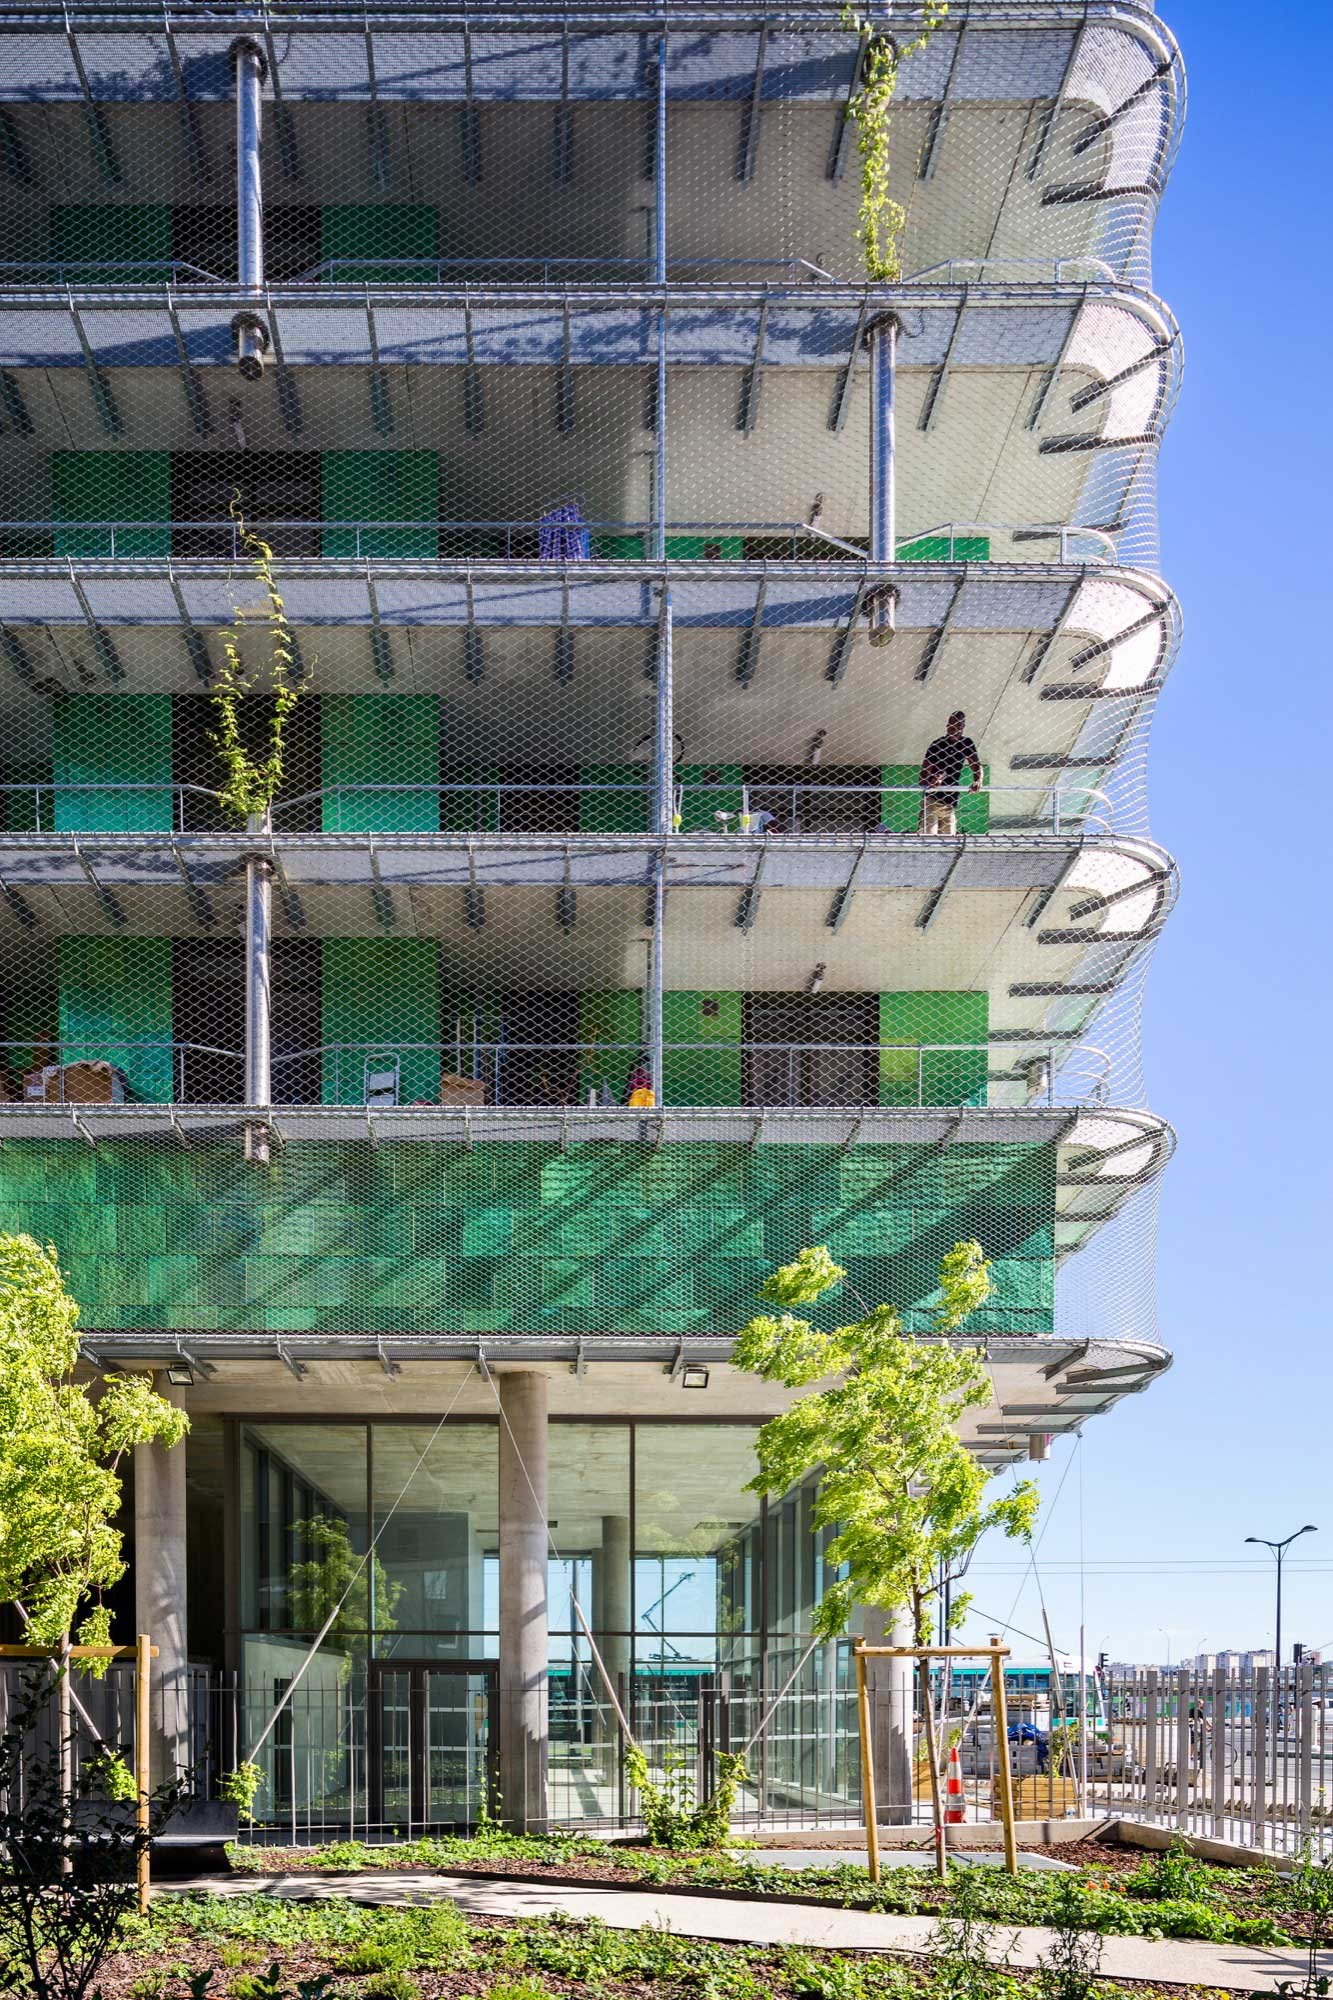 M6B2 Tower of Biodiversity in France by Maison Edouard Francois | Yellowtrace